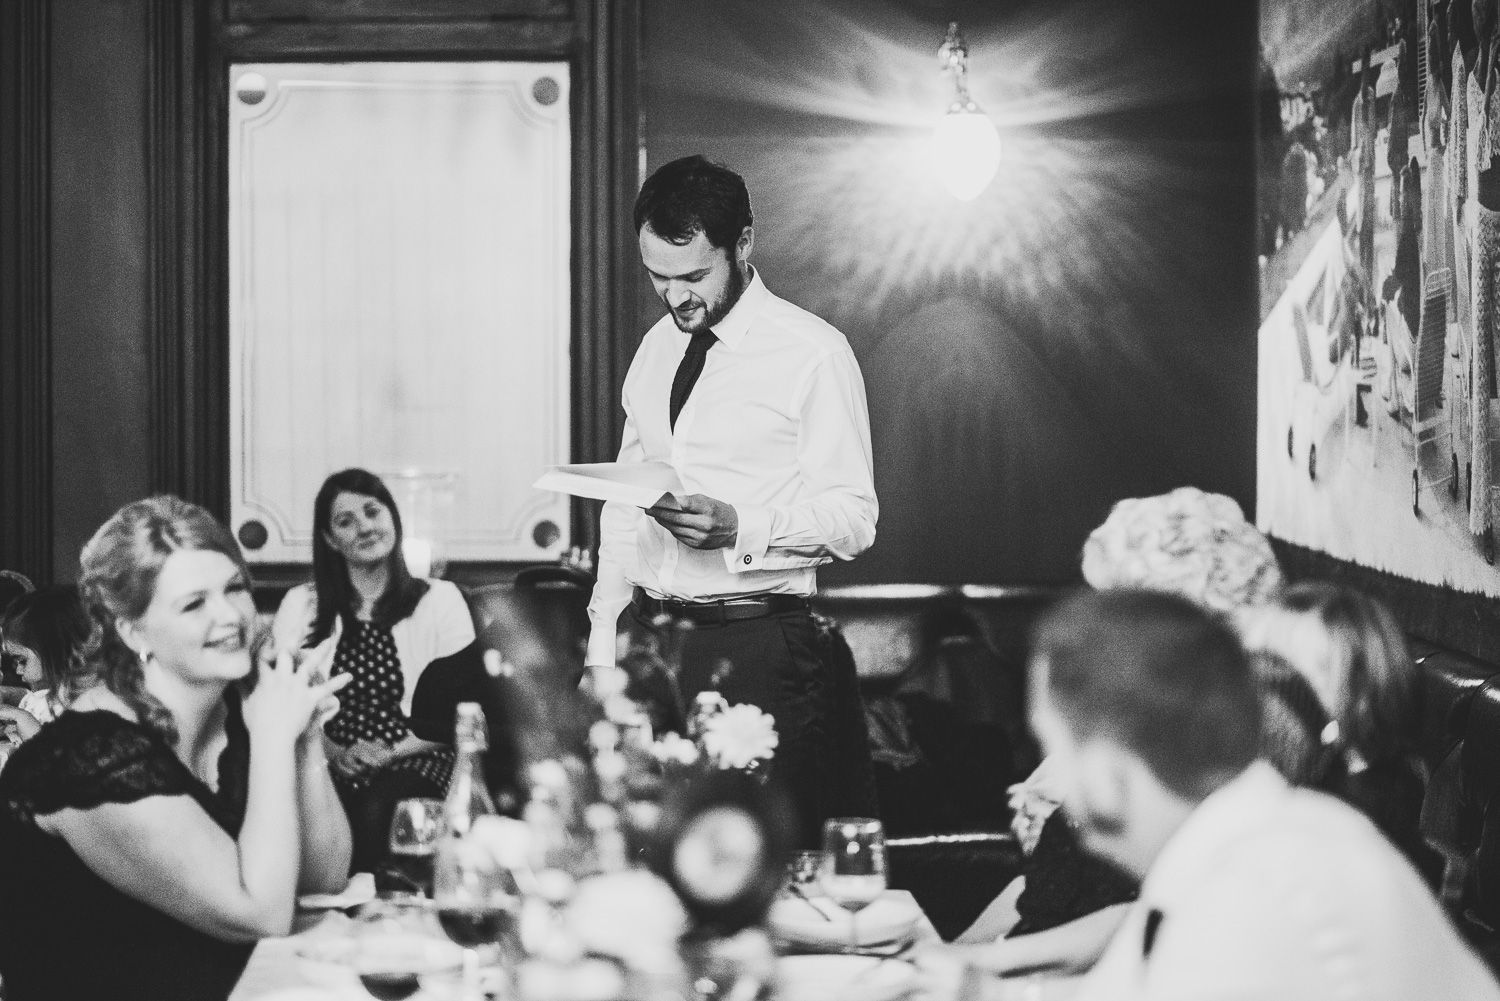 west-london-pub-wedding-48.jpg